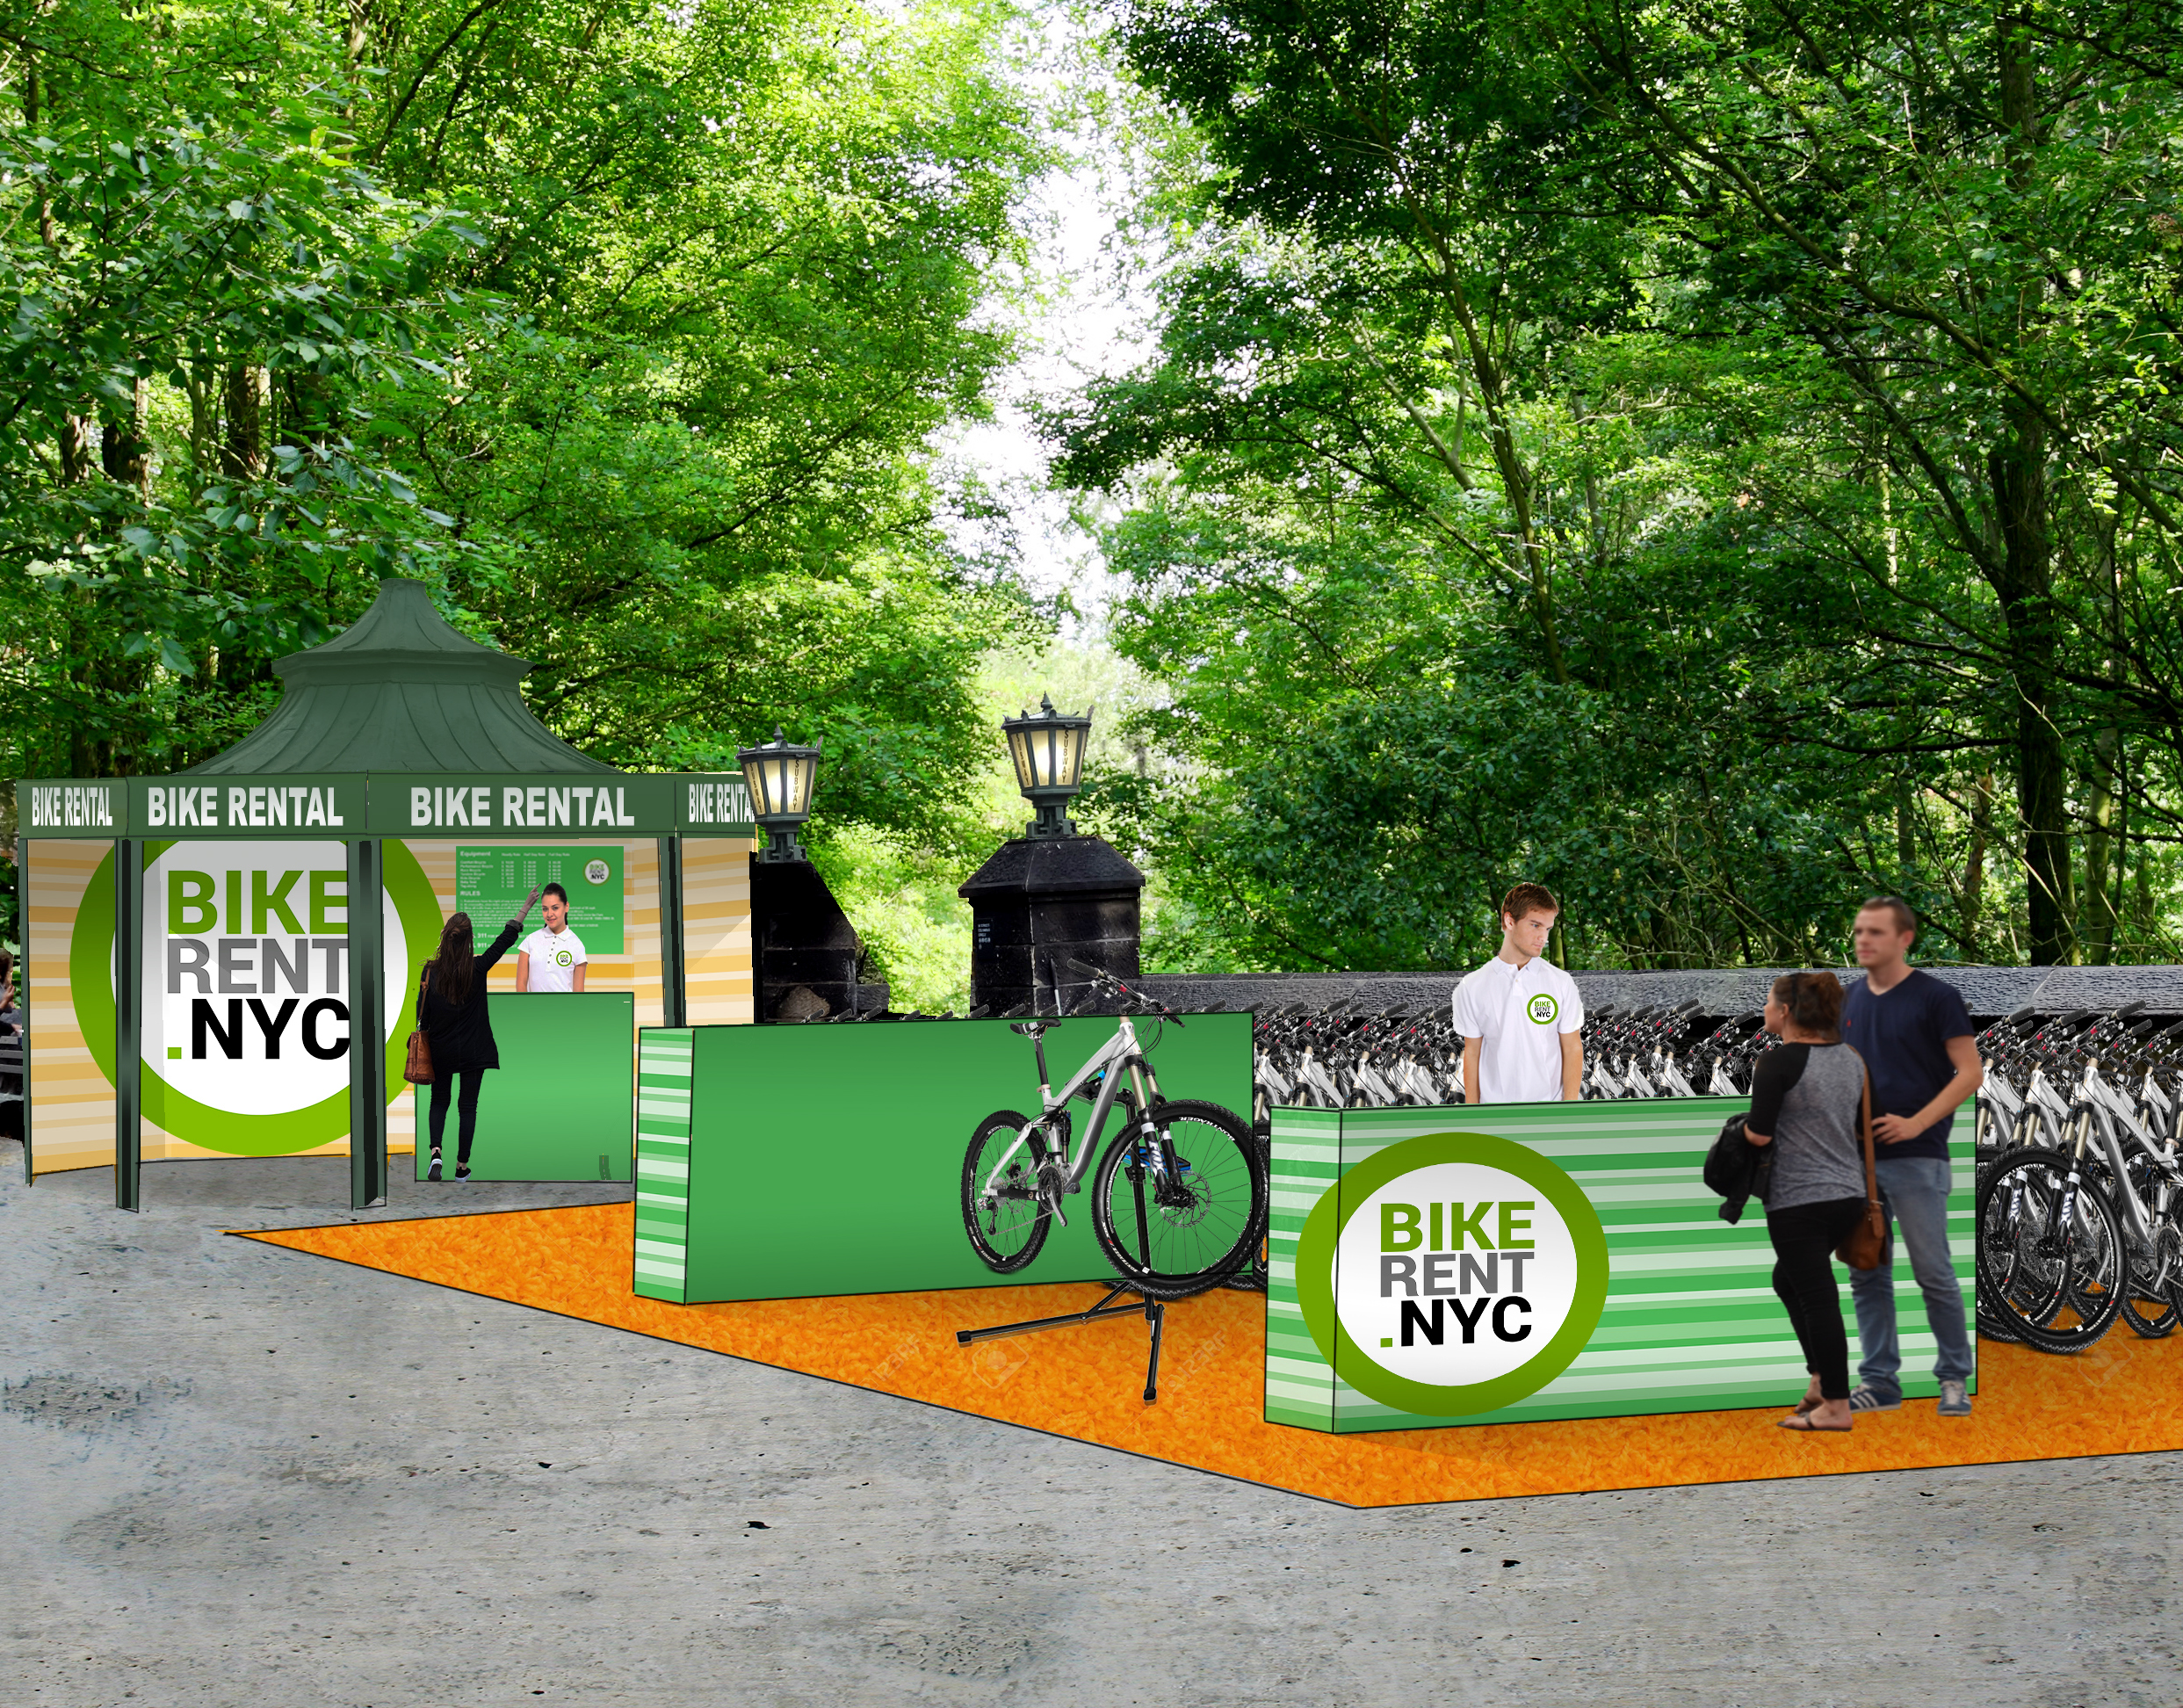 Adriana Kertzer - Central Park Bike Rental RFP